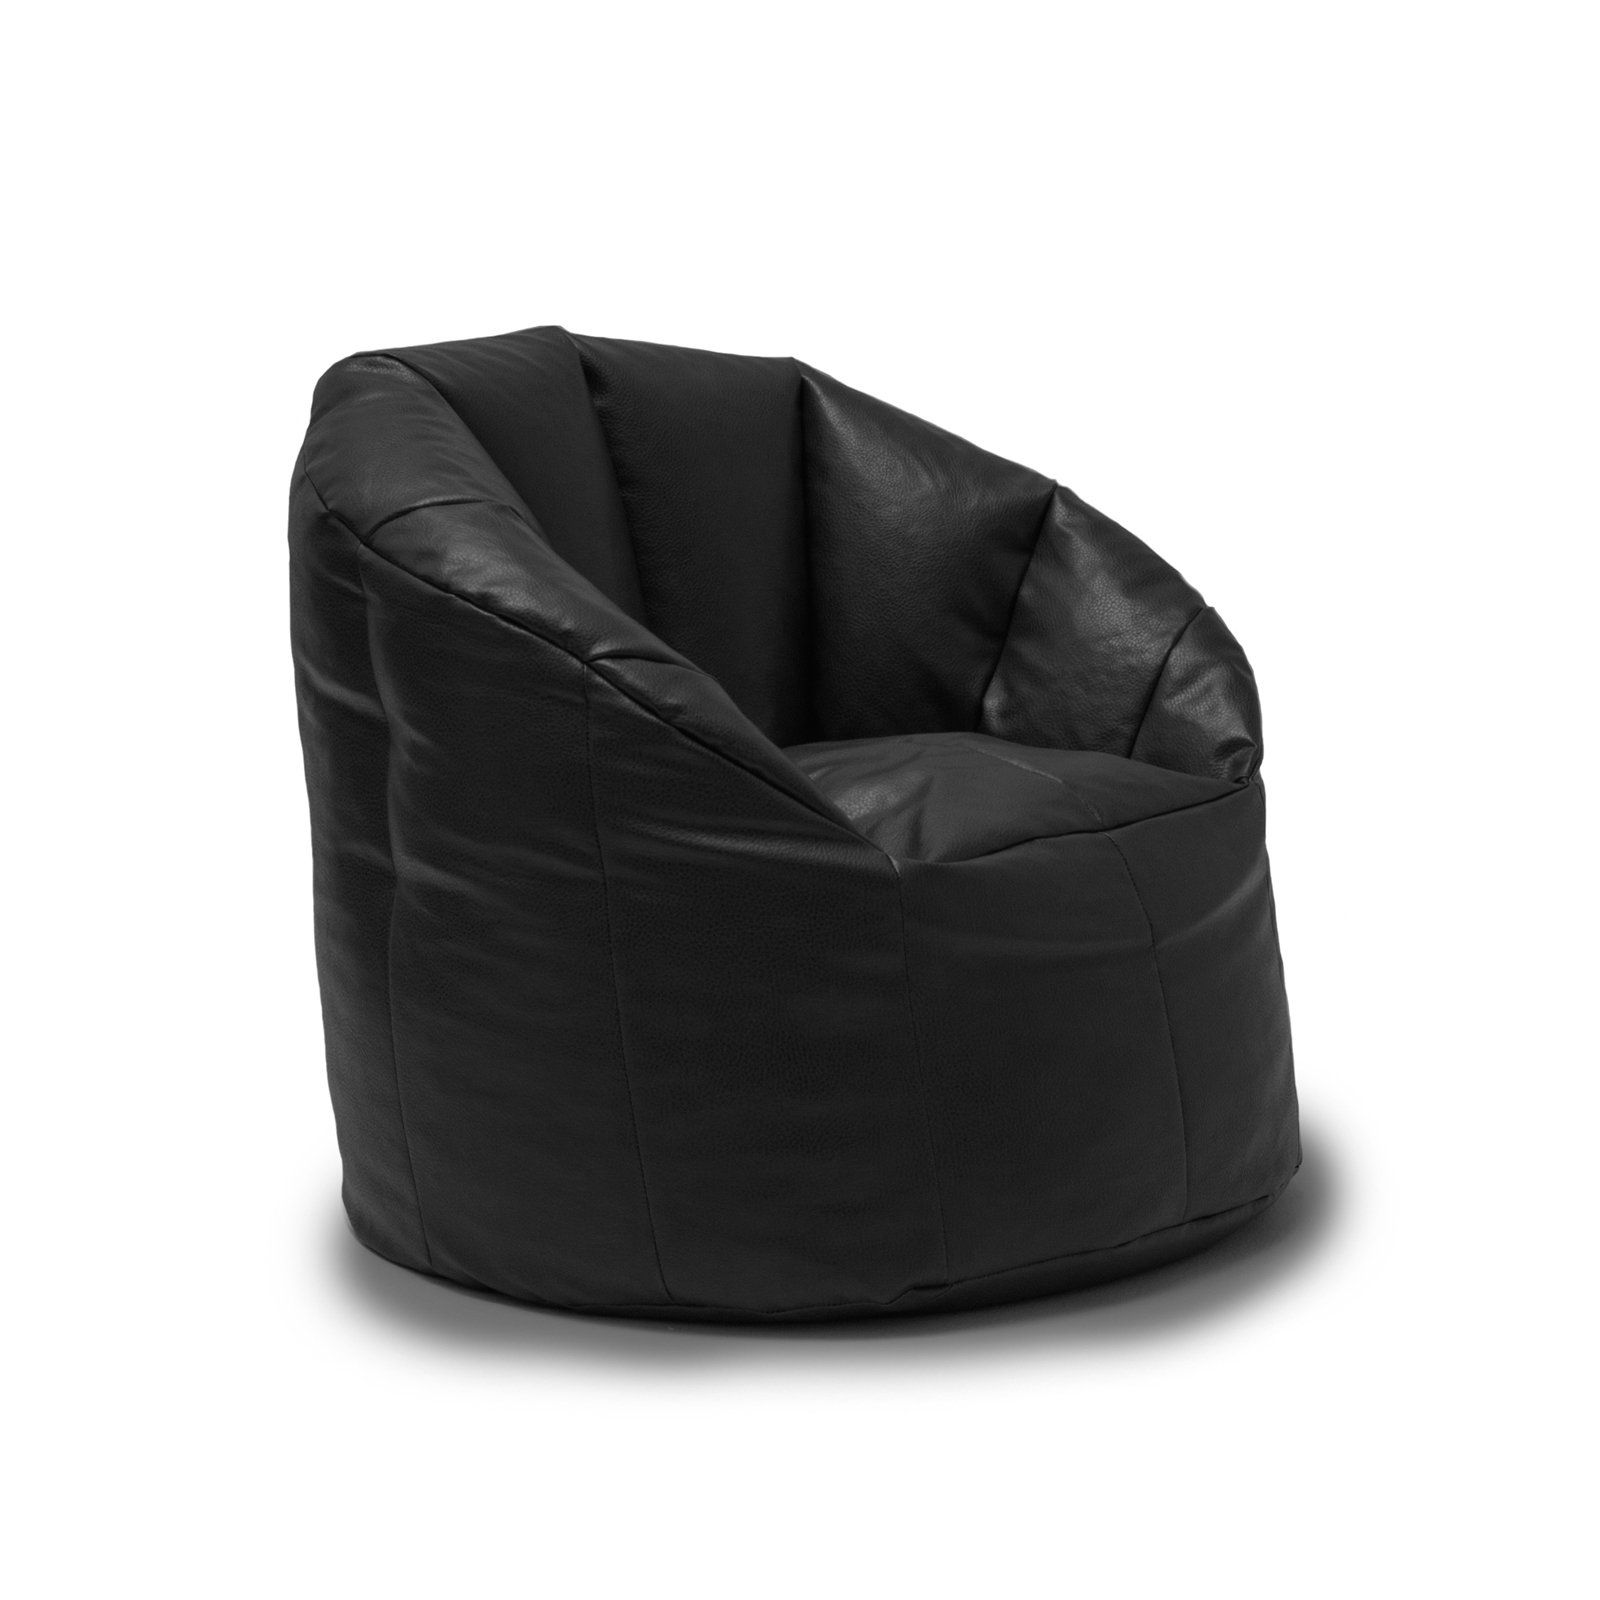 structured bean bag chair gray - room essentials